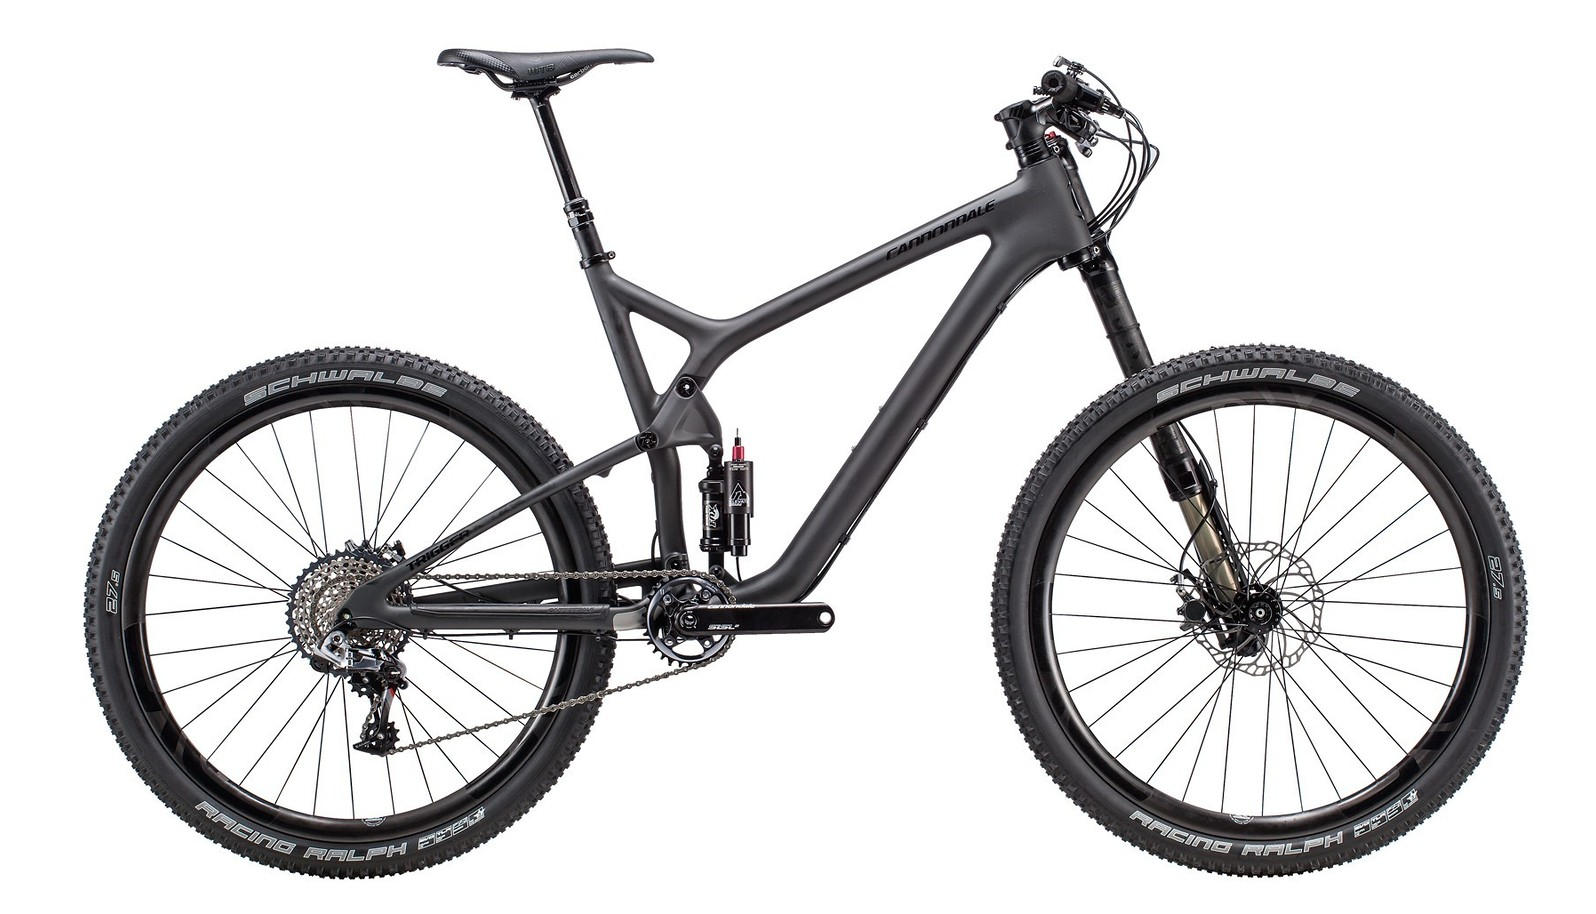 2015 Cannondale Trigger 27.5 Carbon Black Inc.